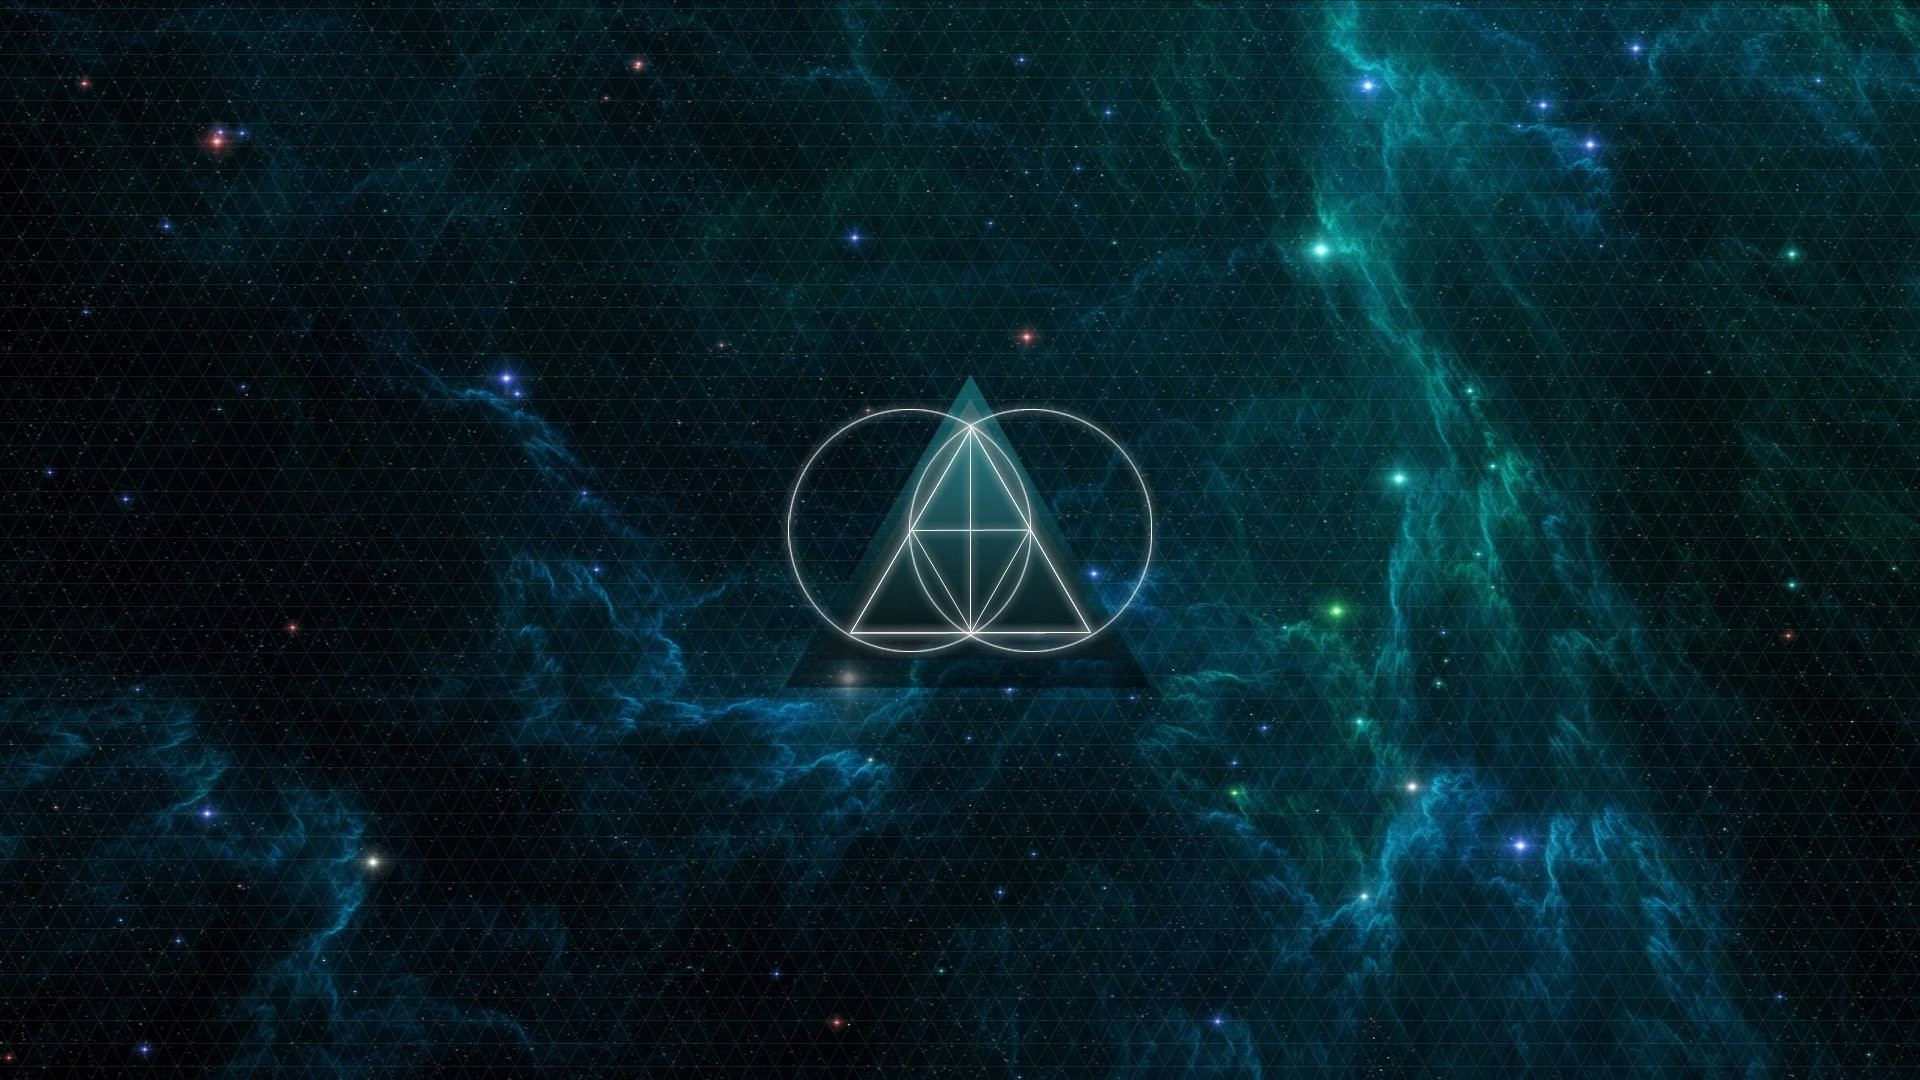 3d Animal Wallpapers Desktop Free Download Geometry Sacred Geometry Anime Galaxy The Glitch Mob